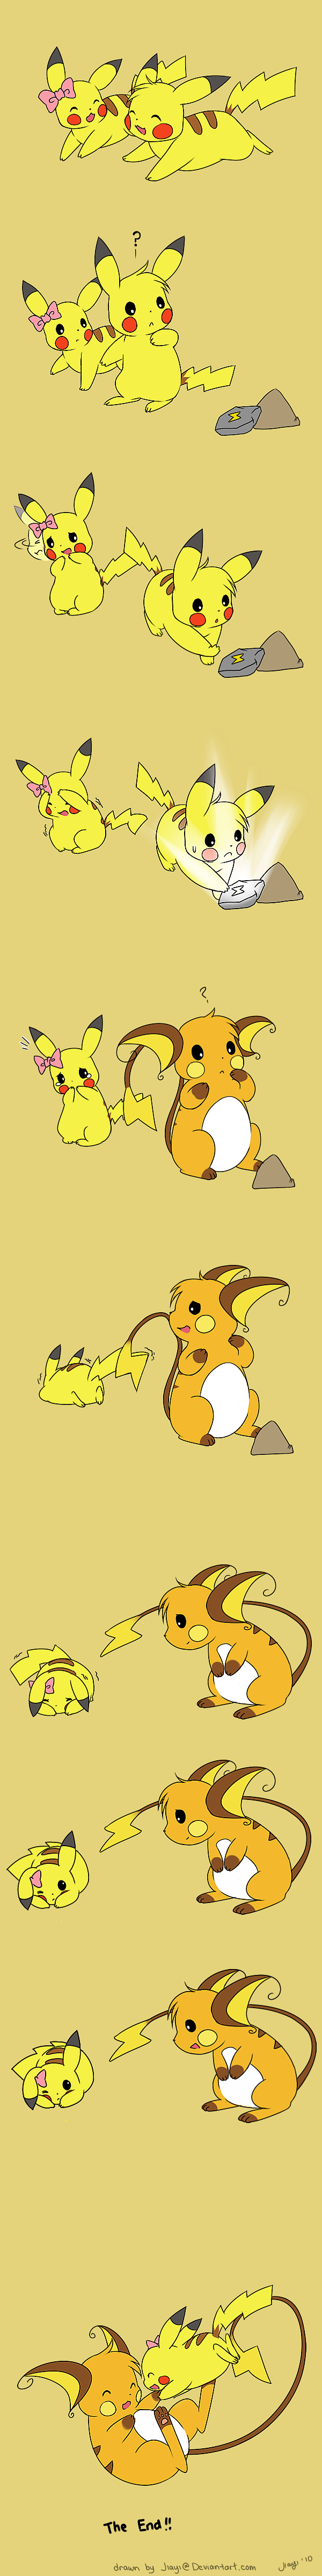 :< :d ? bow evolution happy no_humans open_mouth pikachu playing poke pokemon rock scared simple_background smile tears thunder_stone trembling